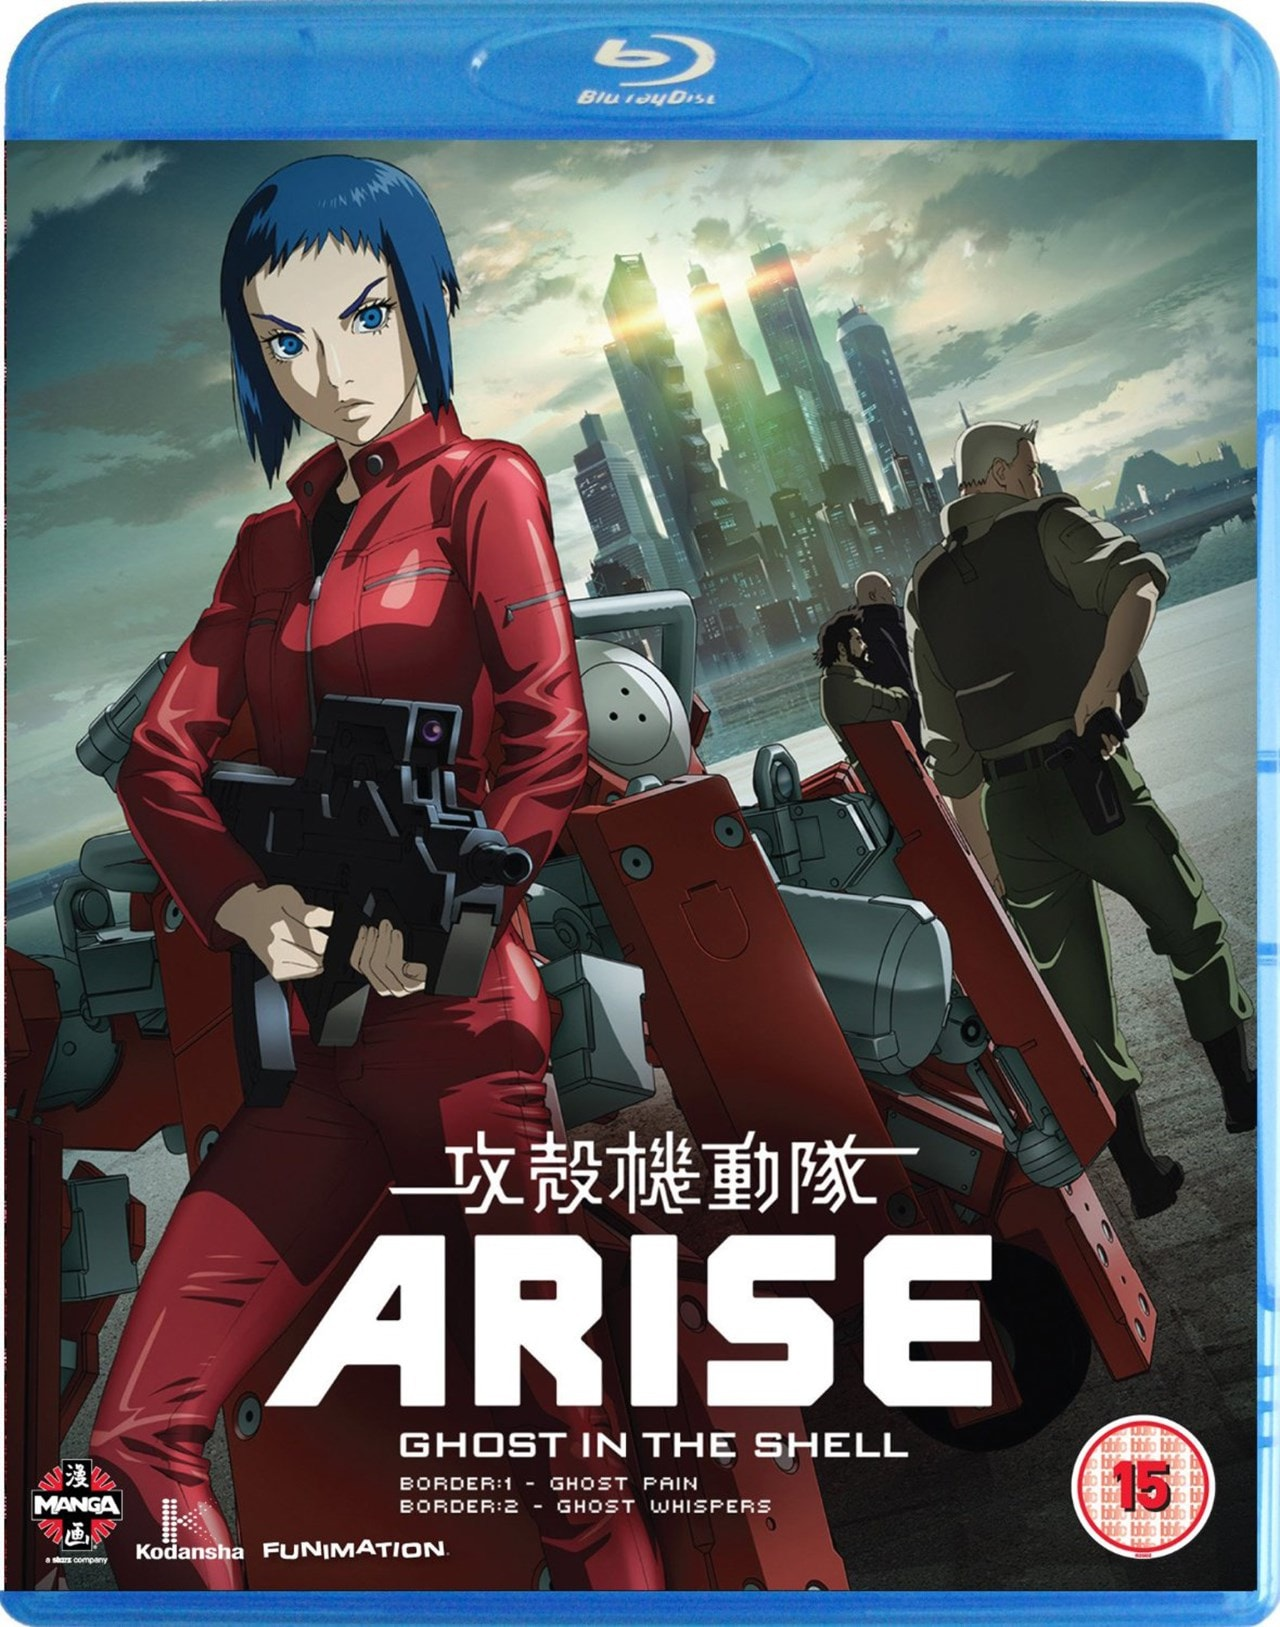 Ghost in the Shell Arise: Borders Parts 1 and 2 - 1